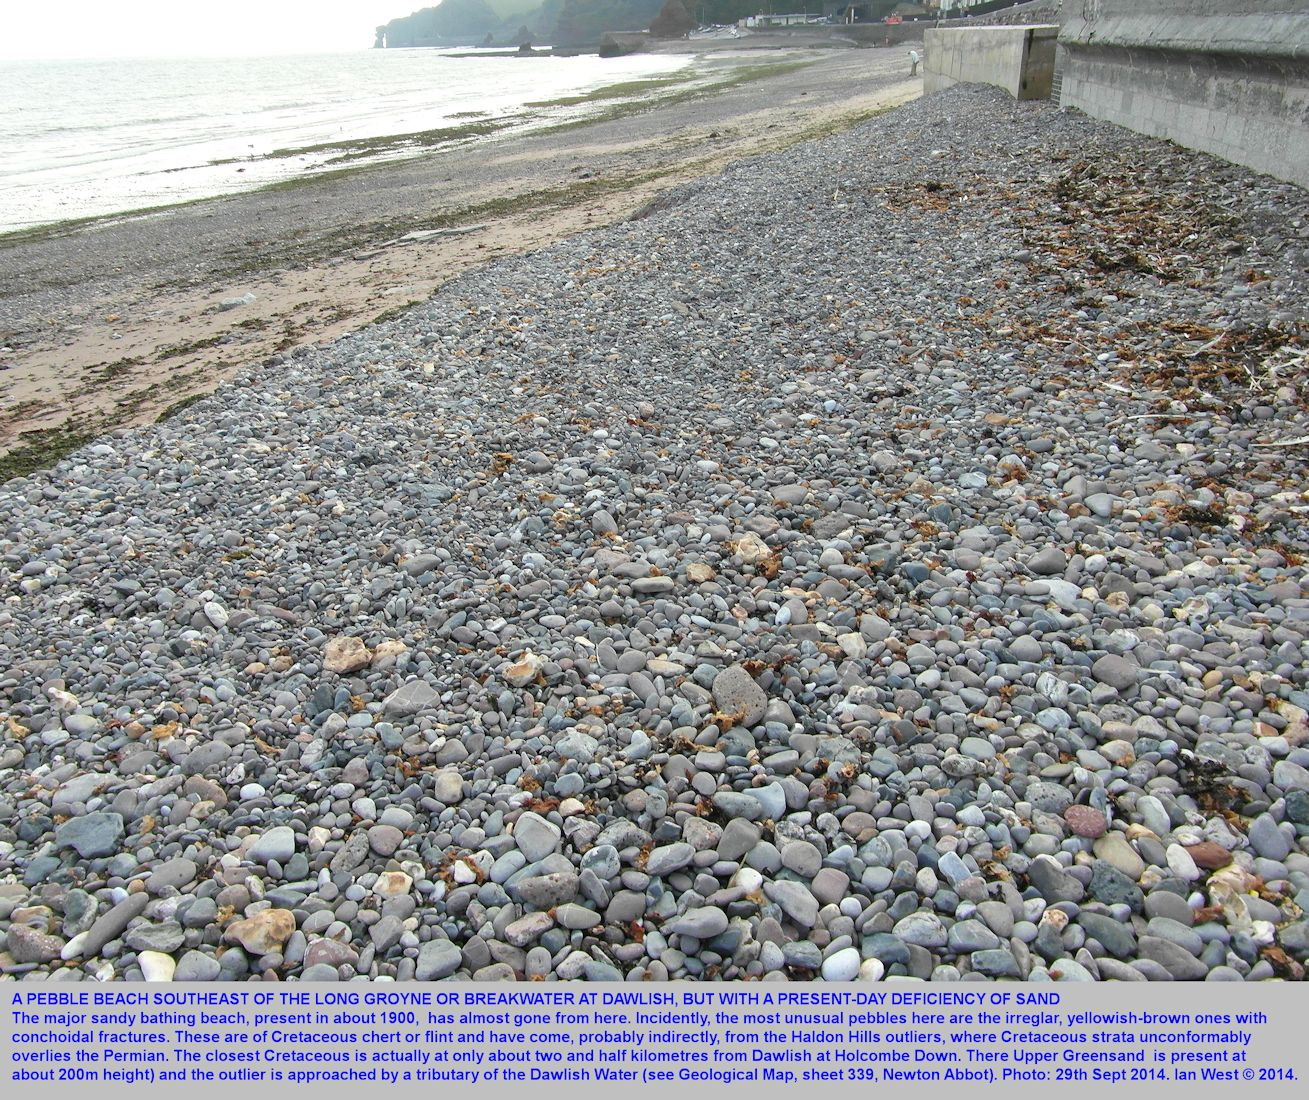 A pebble beach southeast of the major breakwater or groyne, Dawlish, Devon, 29th September 2014